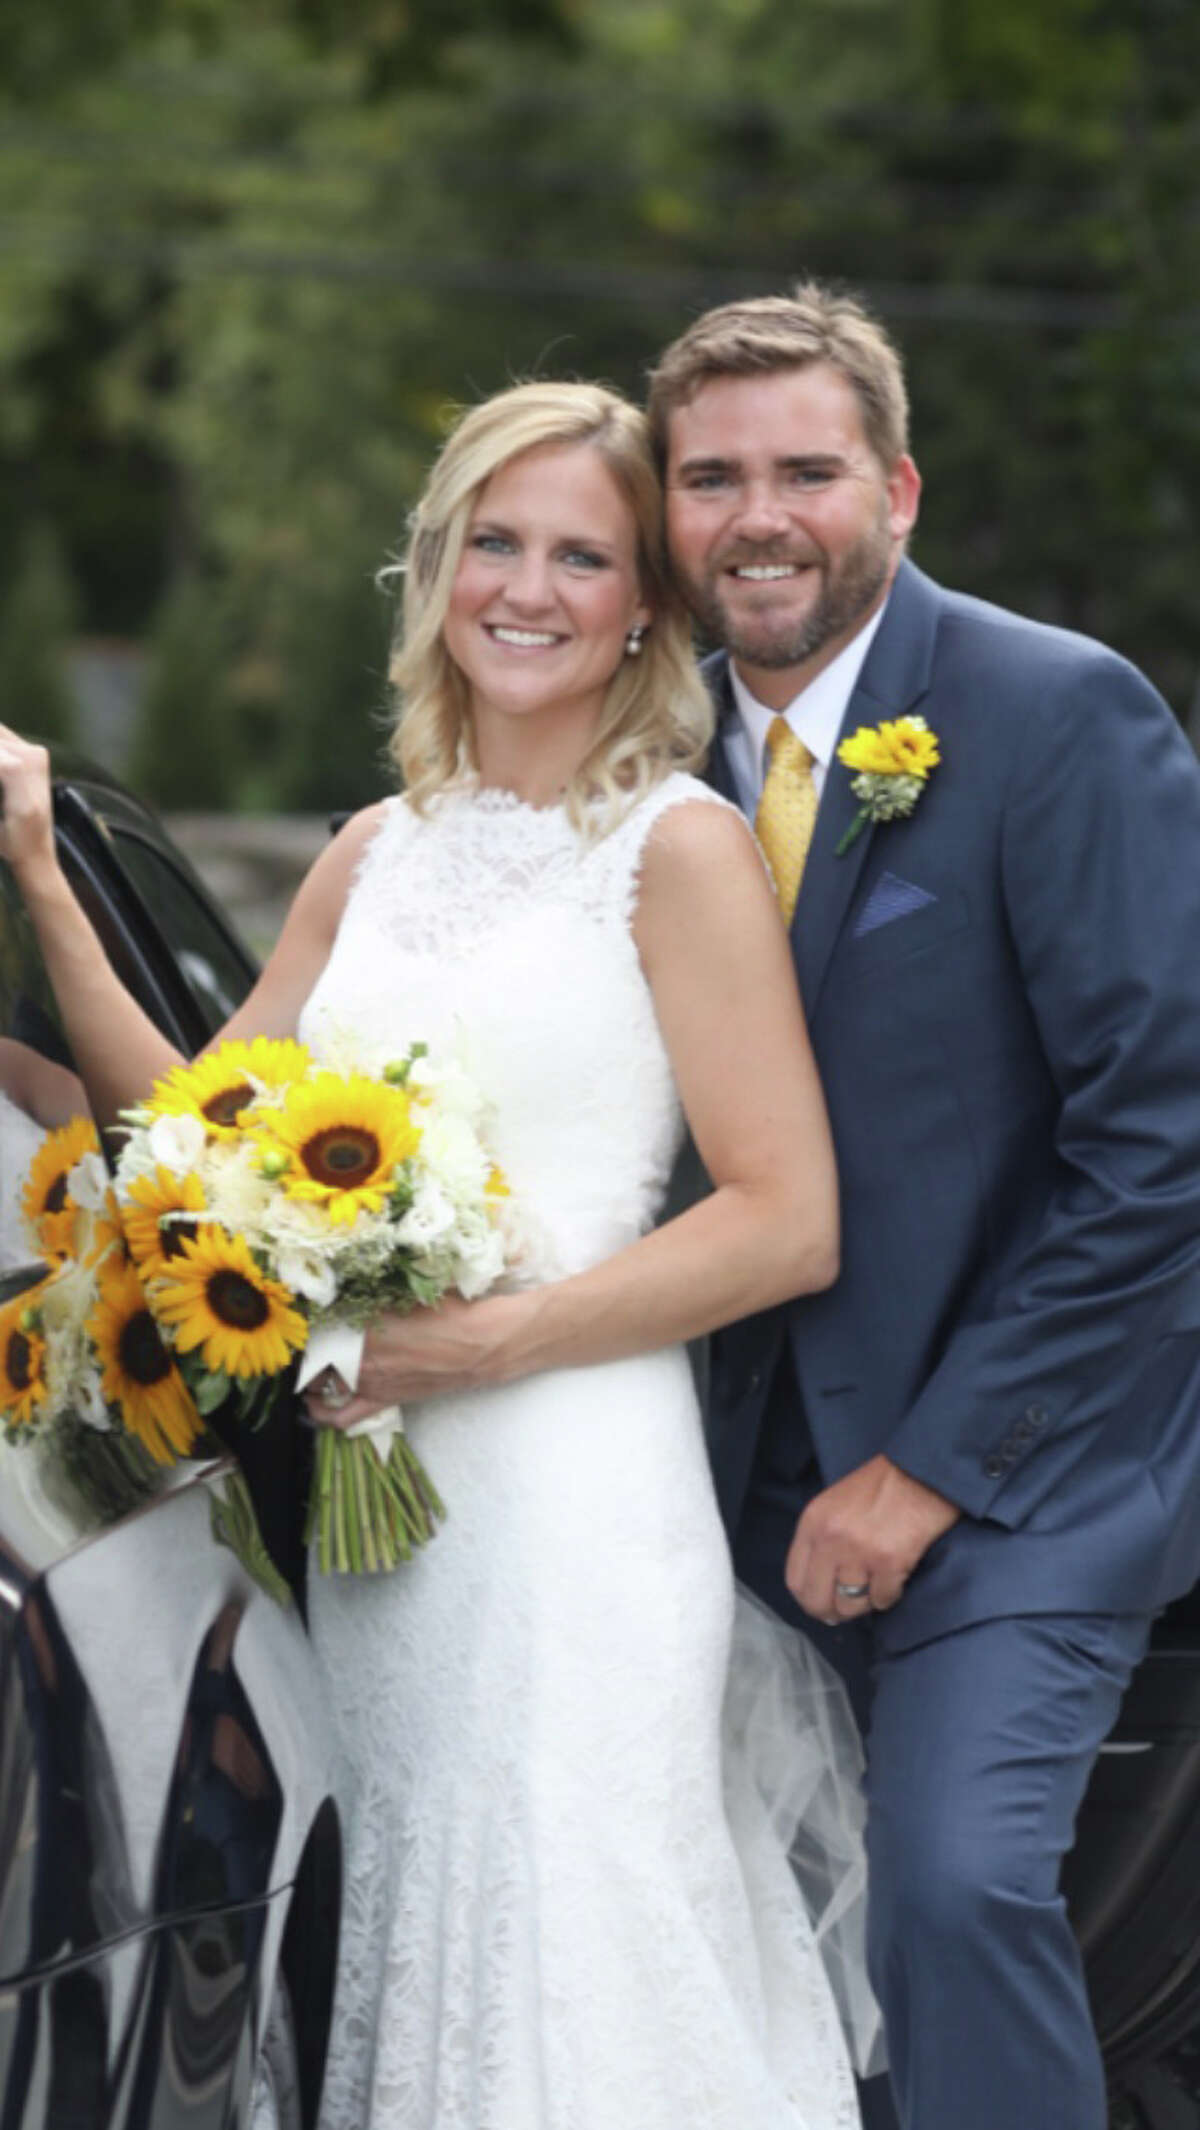 Allison Sweeney March and Ryan Michael Tillar were married on Sept. 17 at St. Mark's Episcopal Church in New Canaan.